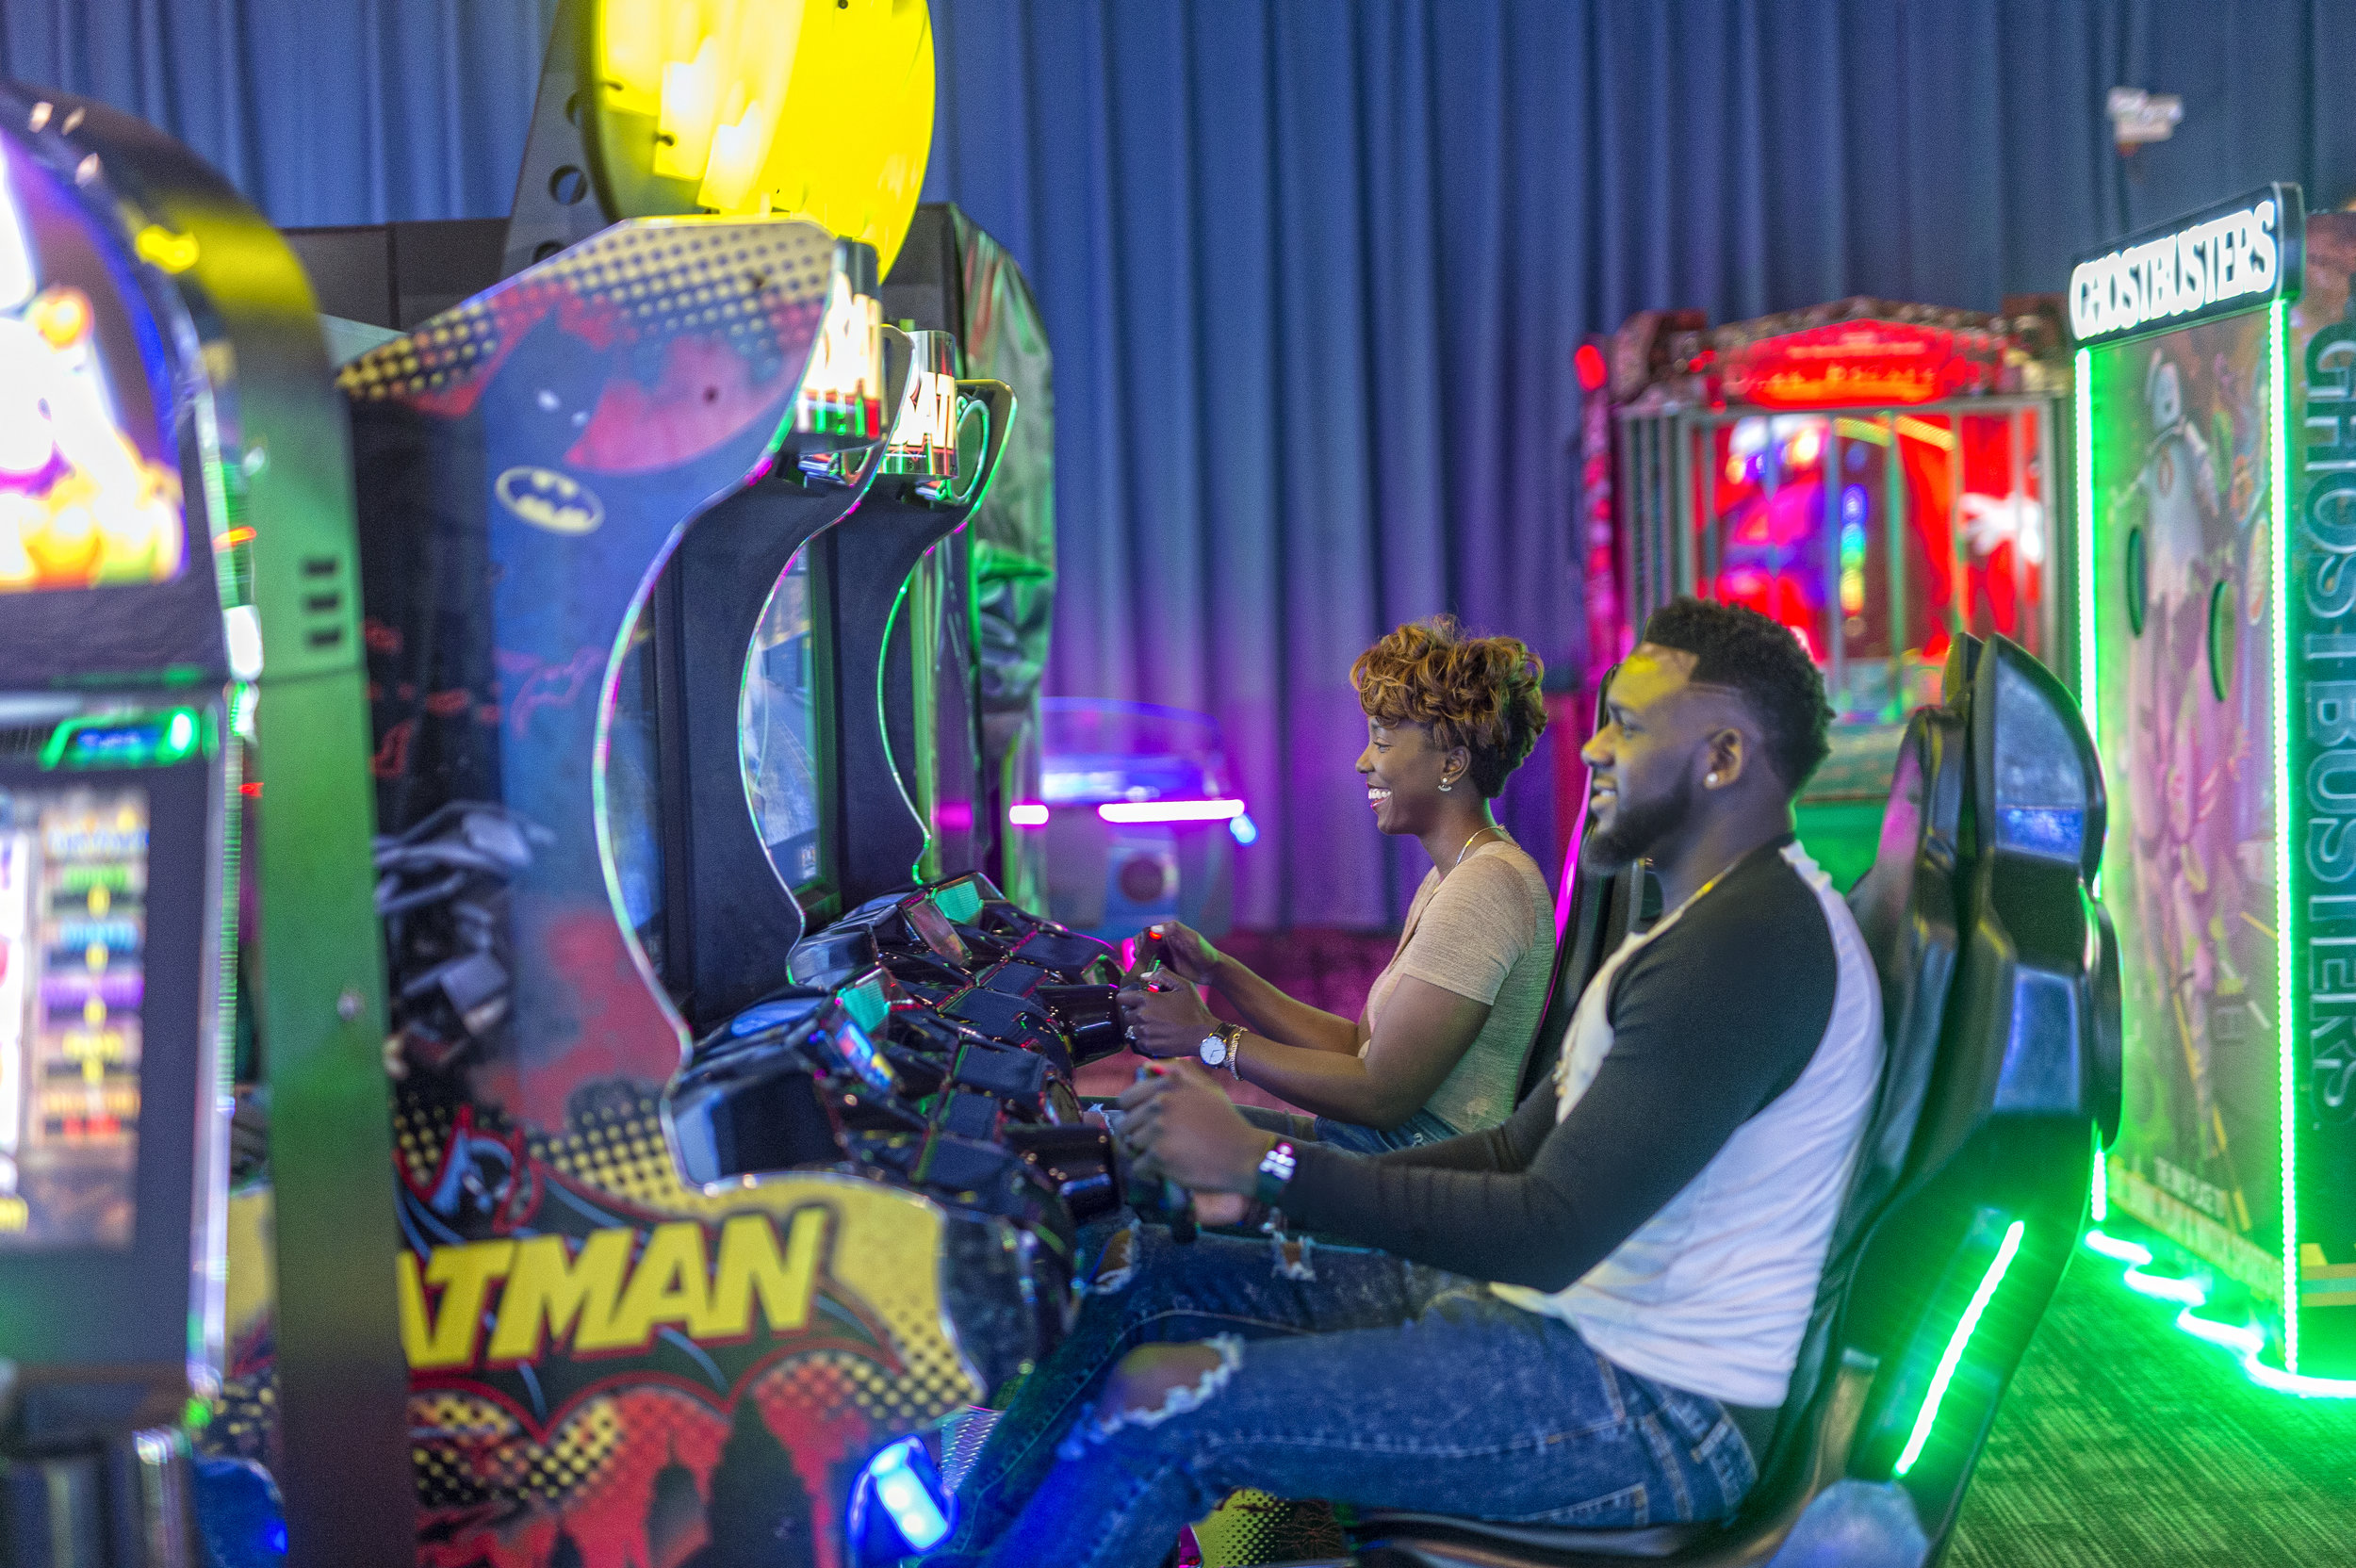 themBoldens_dave-and-busters-black-love-6.jpg